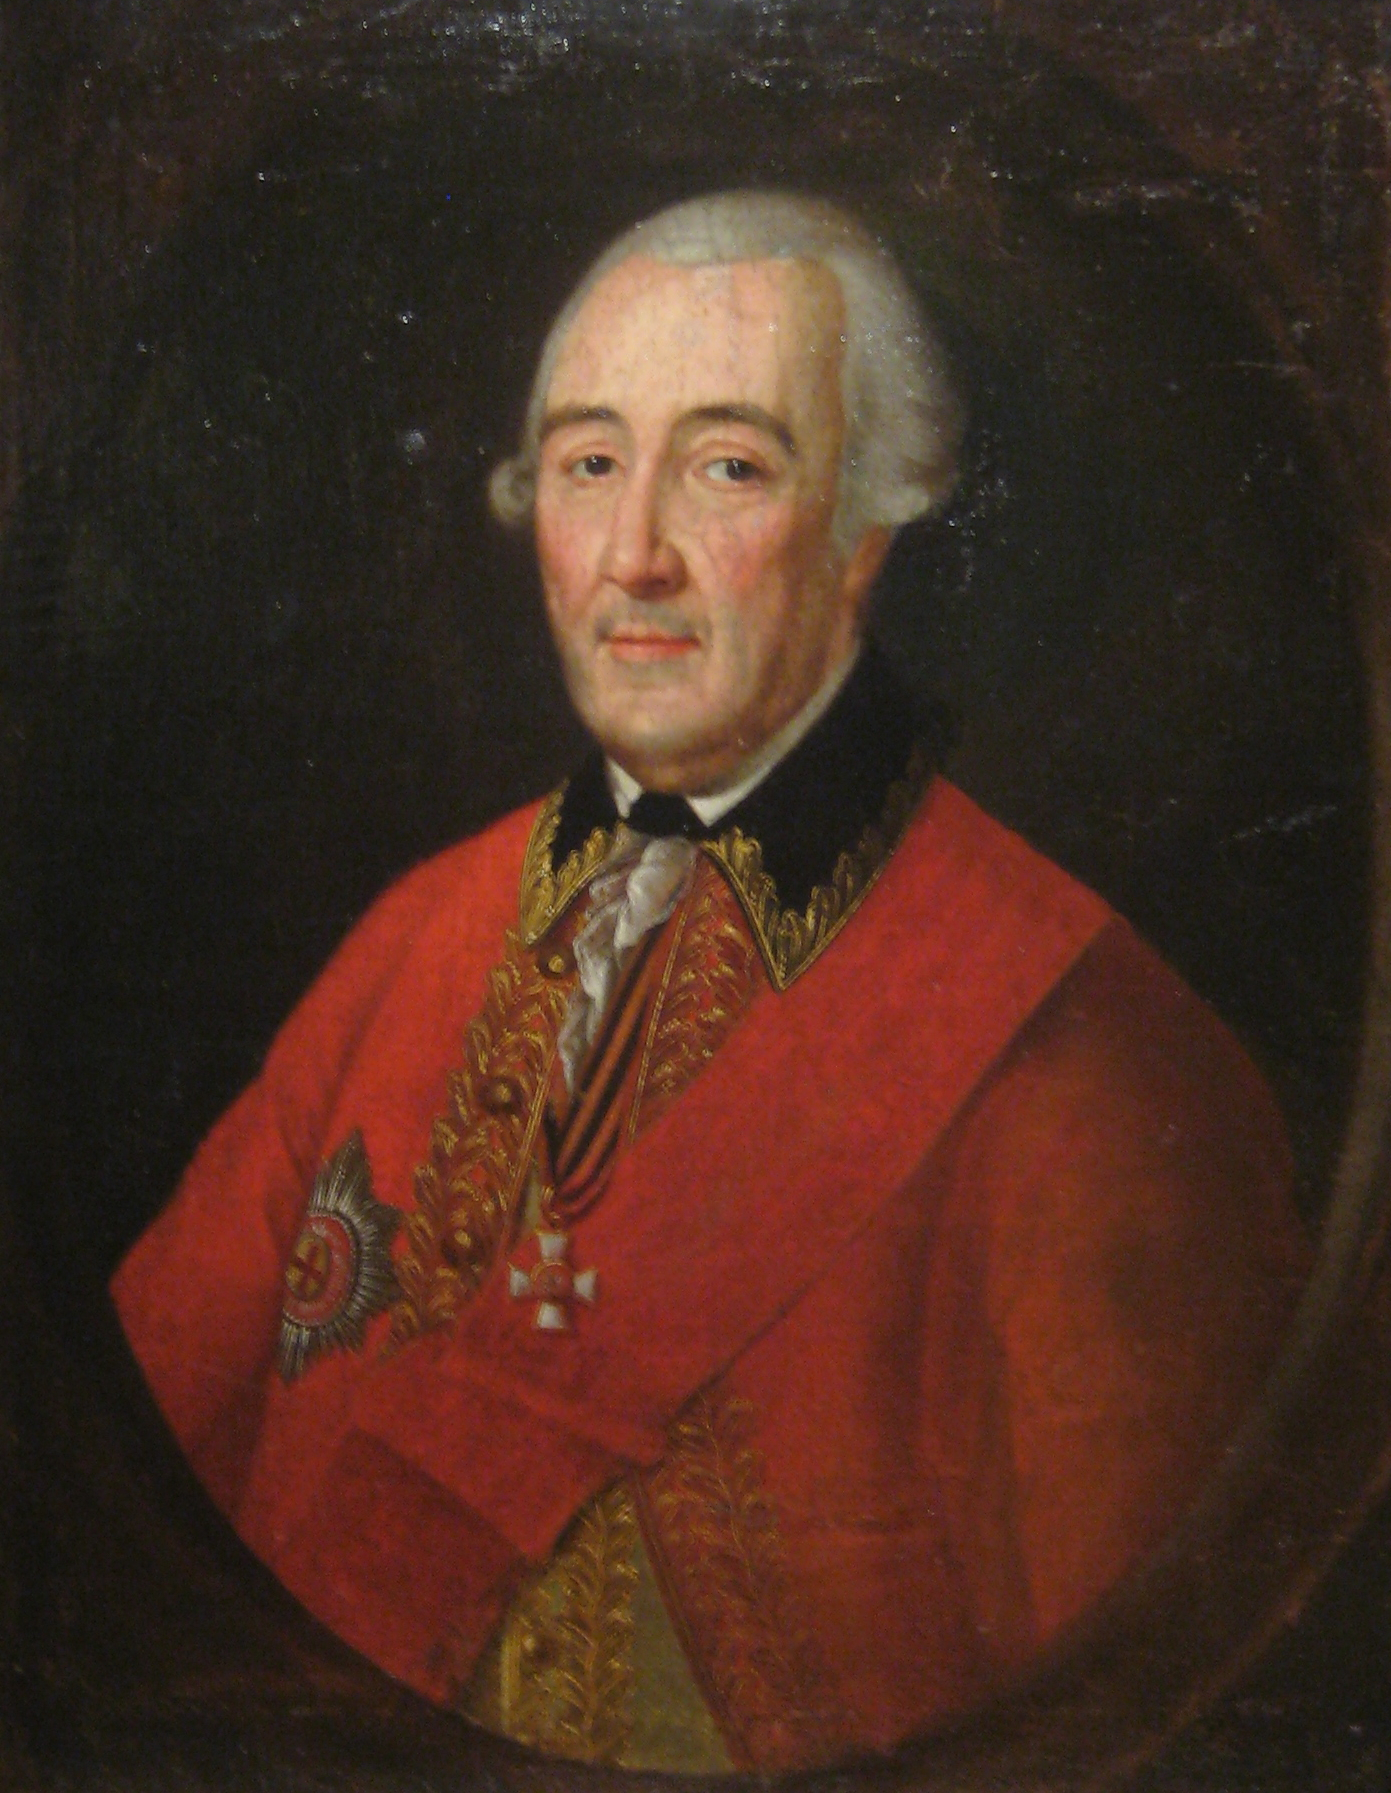 Josef Friedrich August Darbes, A portrait of General of the Artillery Pyotr Melissino (responsible for the Melissino Rite), circa 1773-80, Kursk Gallery